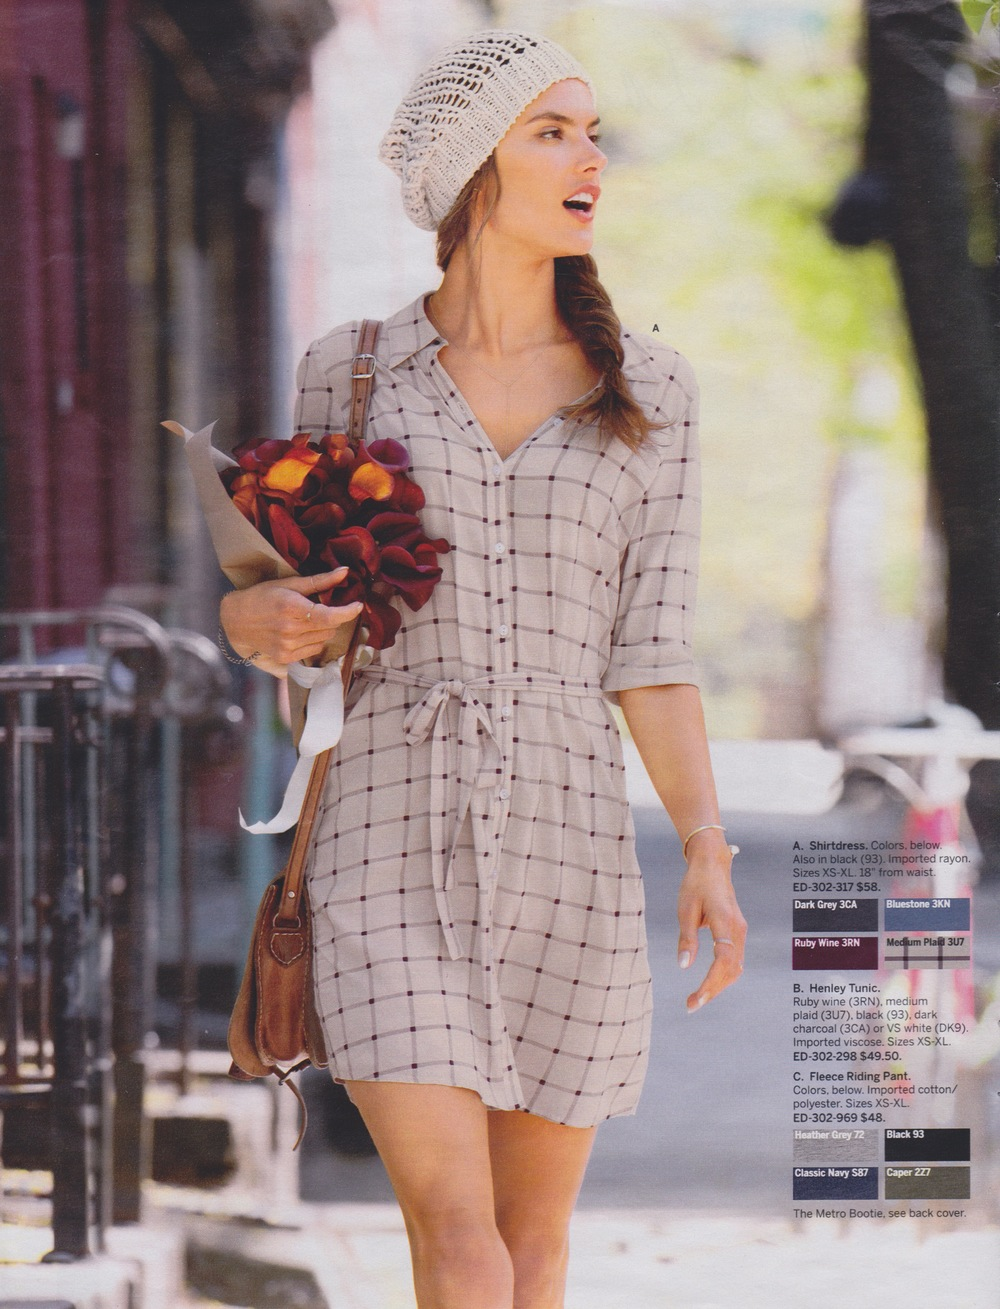 photo shoot on the streets of brooklyn with victorias secret and alessandra ambrosio and flowers